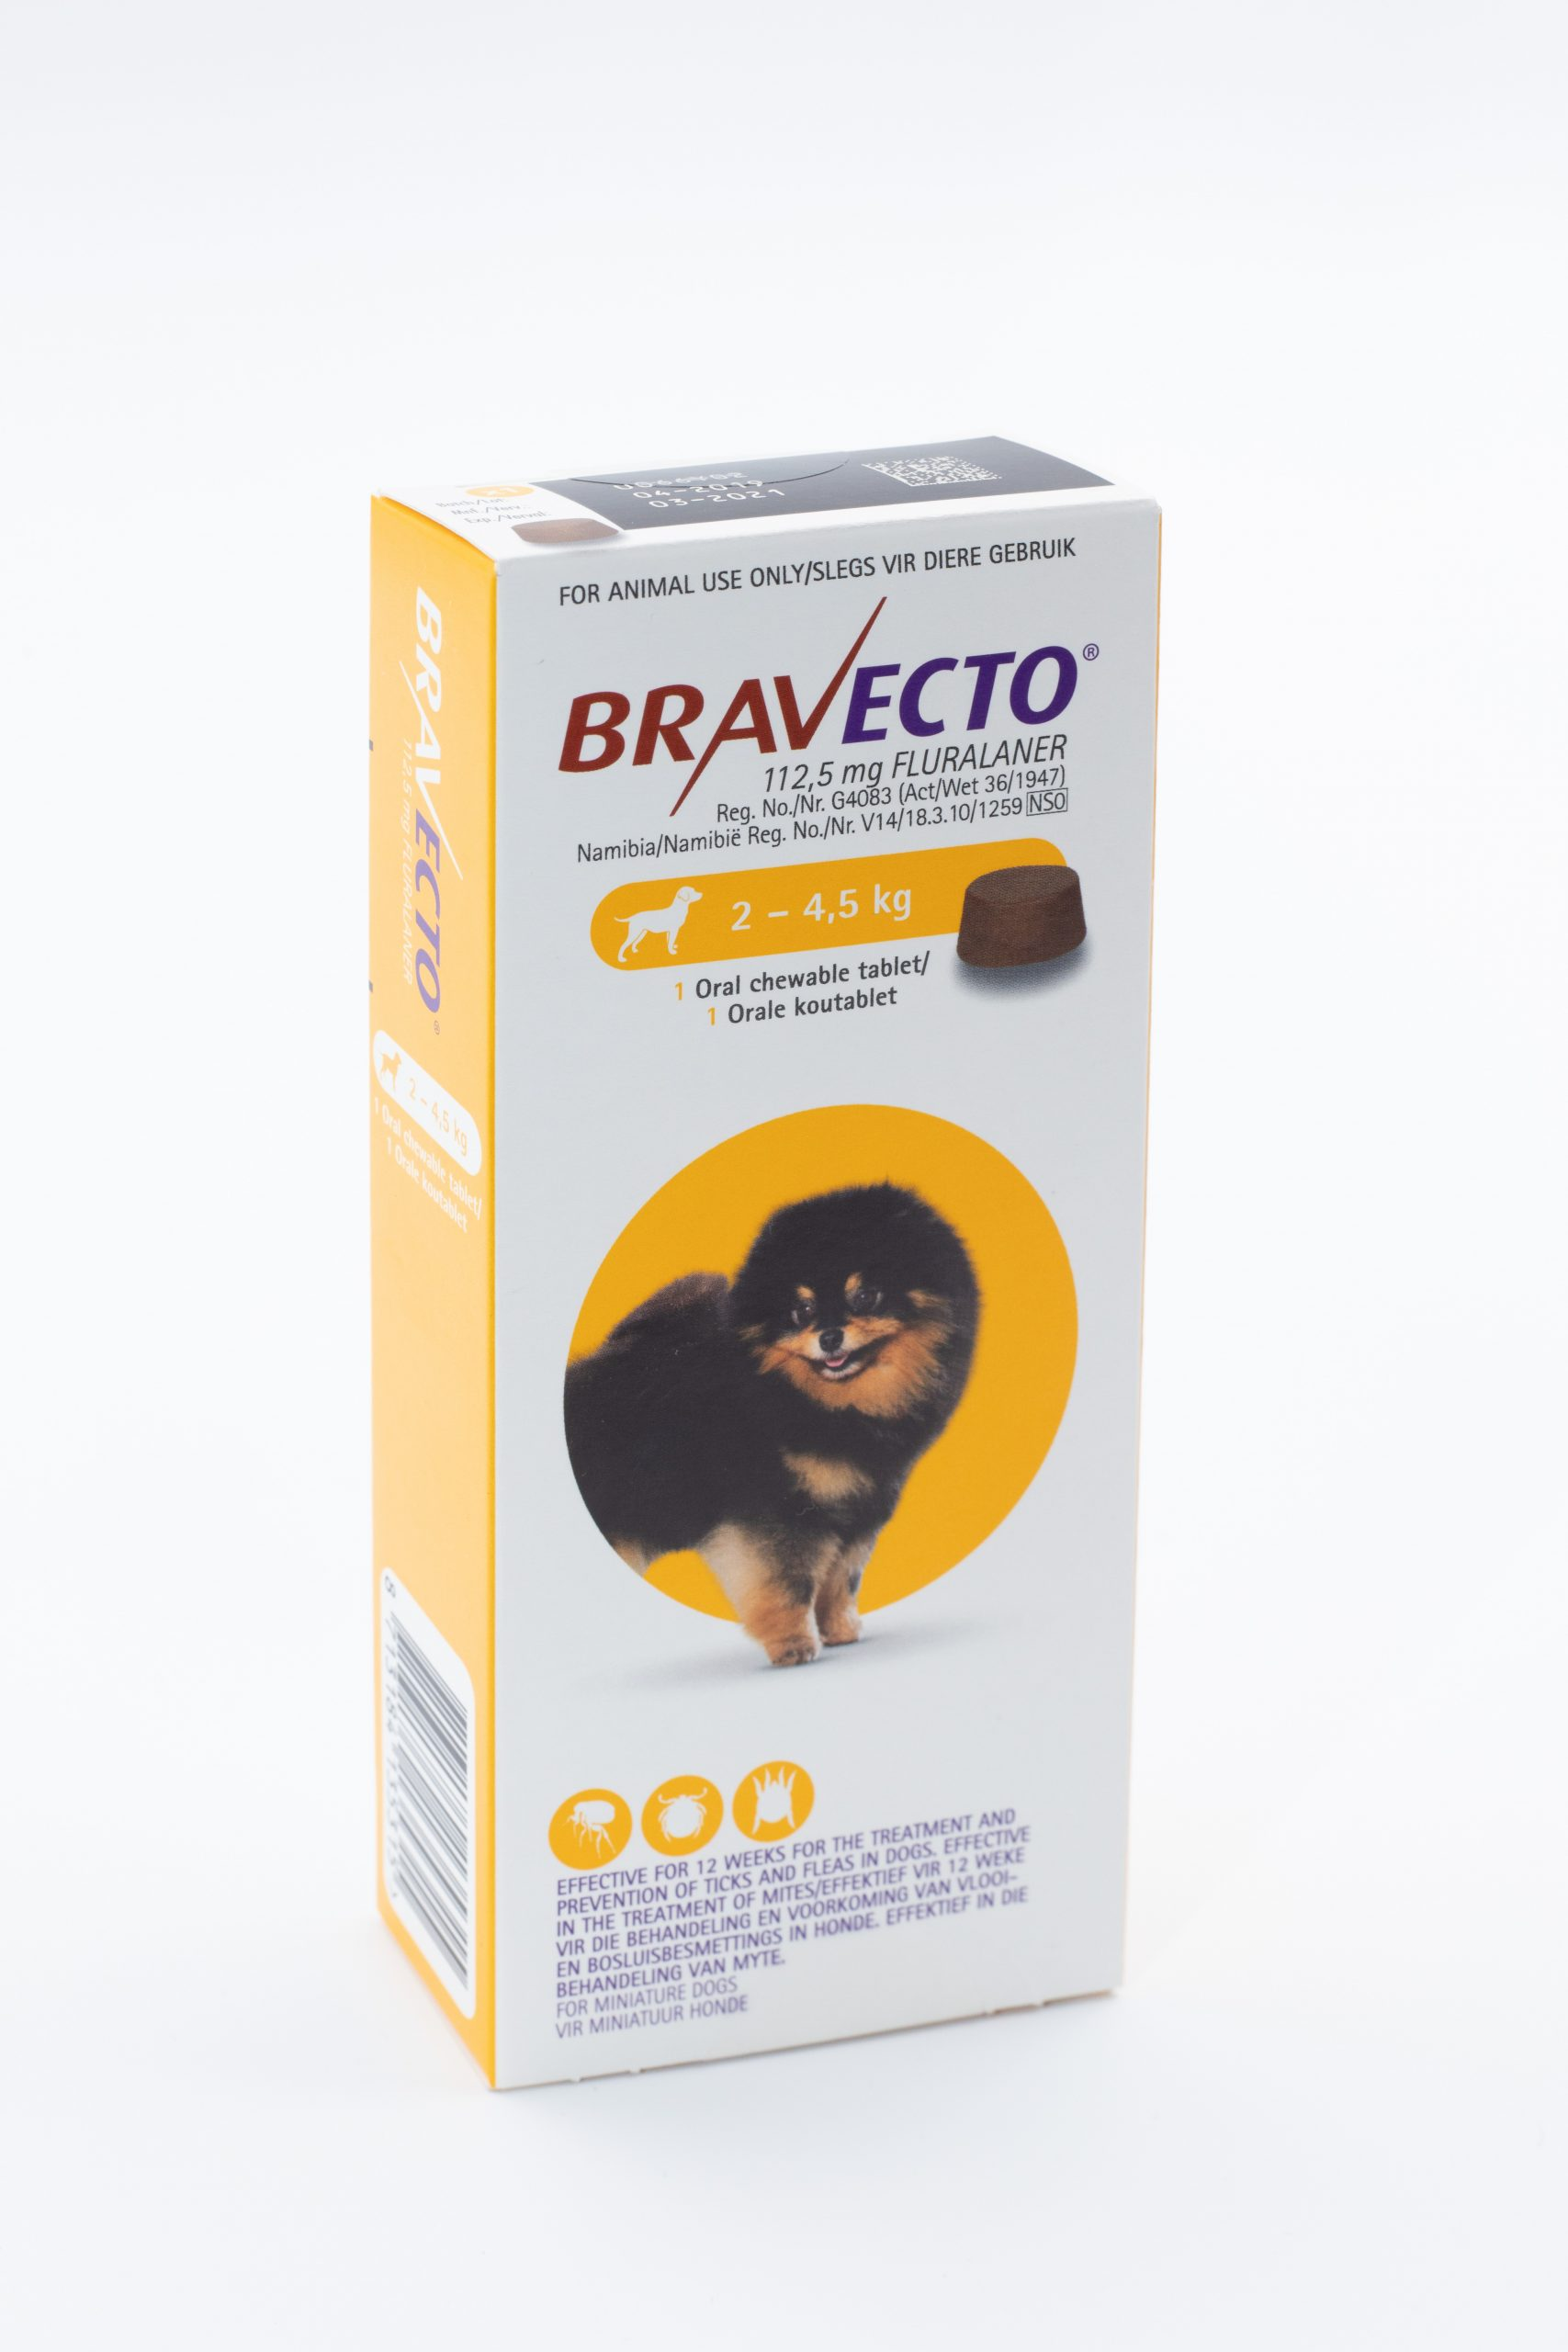 Bravecto Tablet Dog 2-4.5kg Toy Yellow